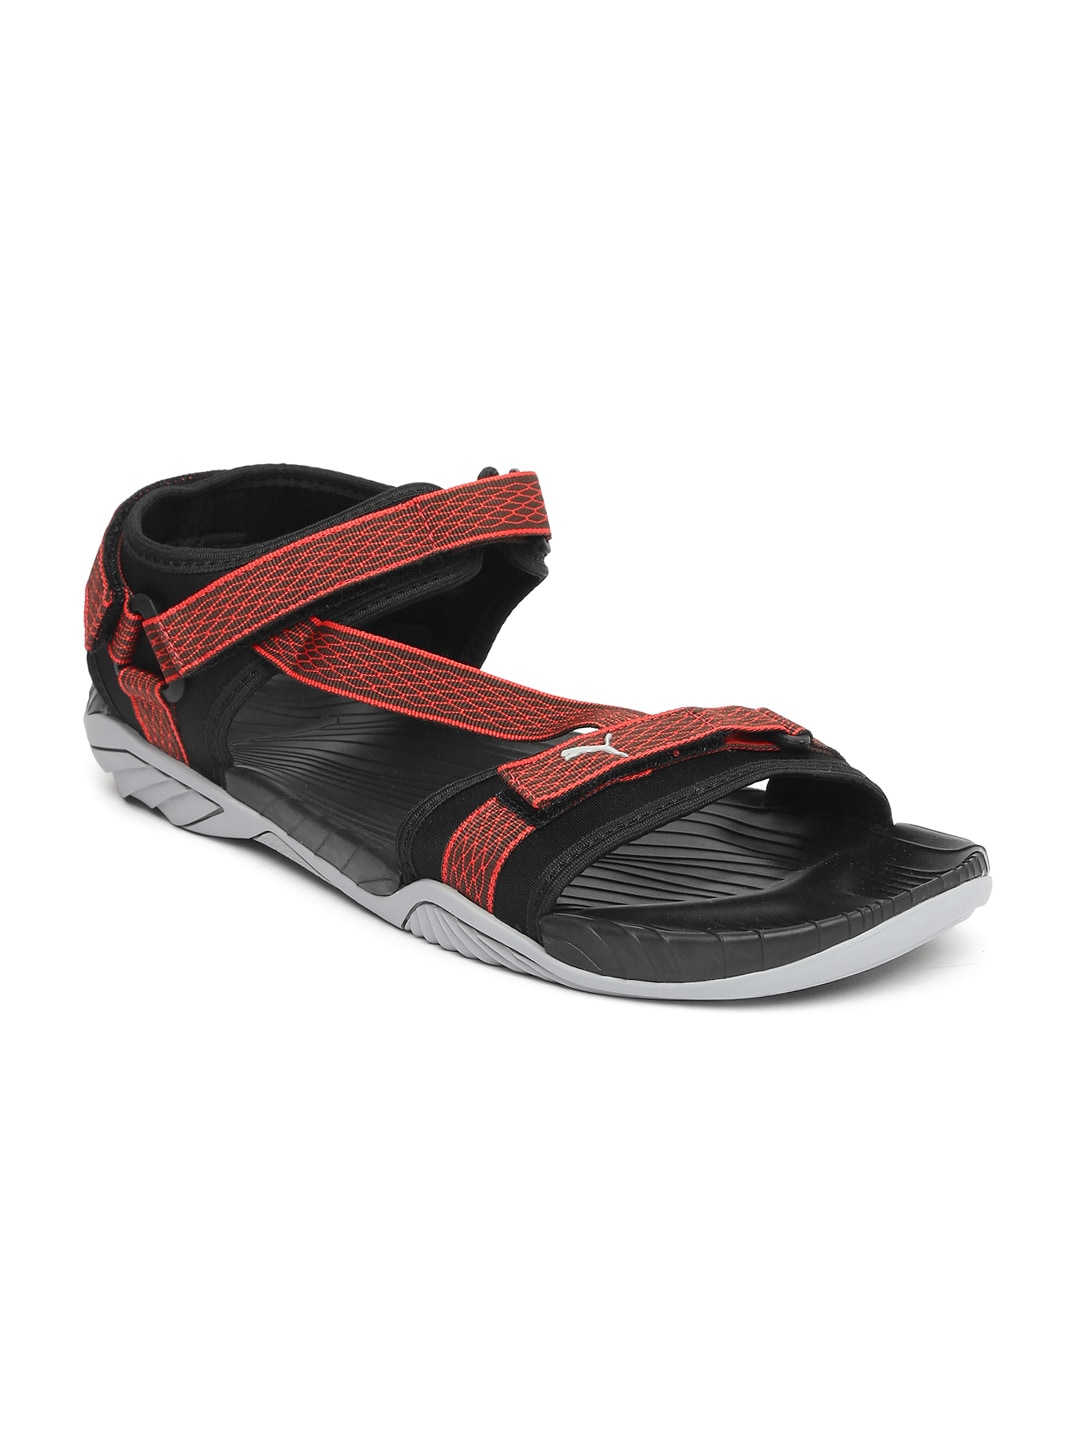 1810b903c705 Puma Men Black Sandals - Buy Puma Men Black Sandals online in India